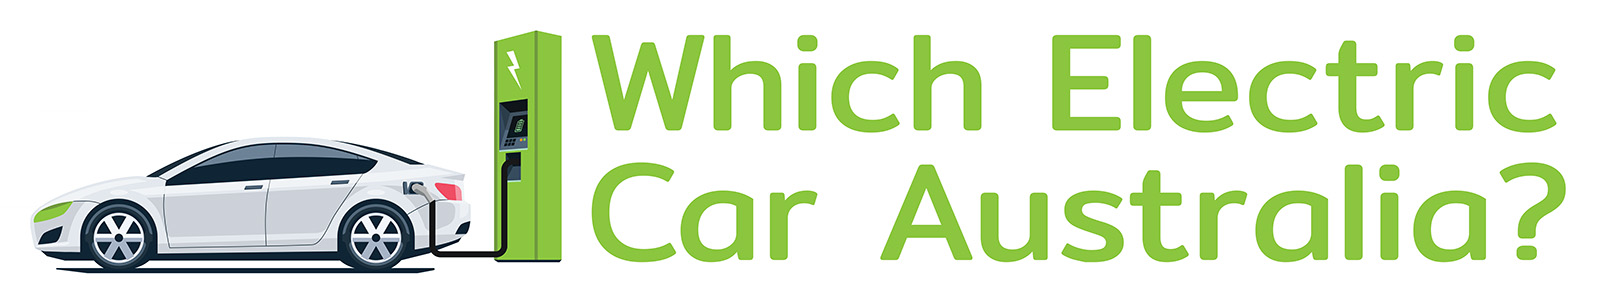 Which Electric Car Australia